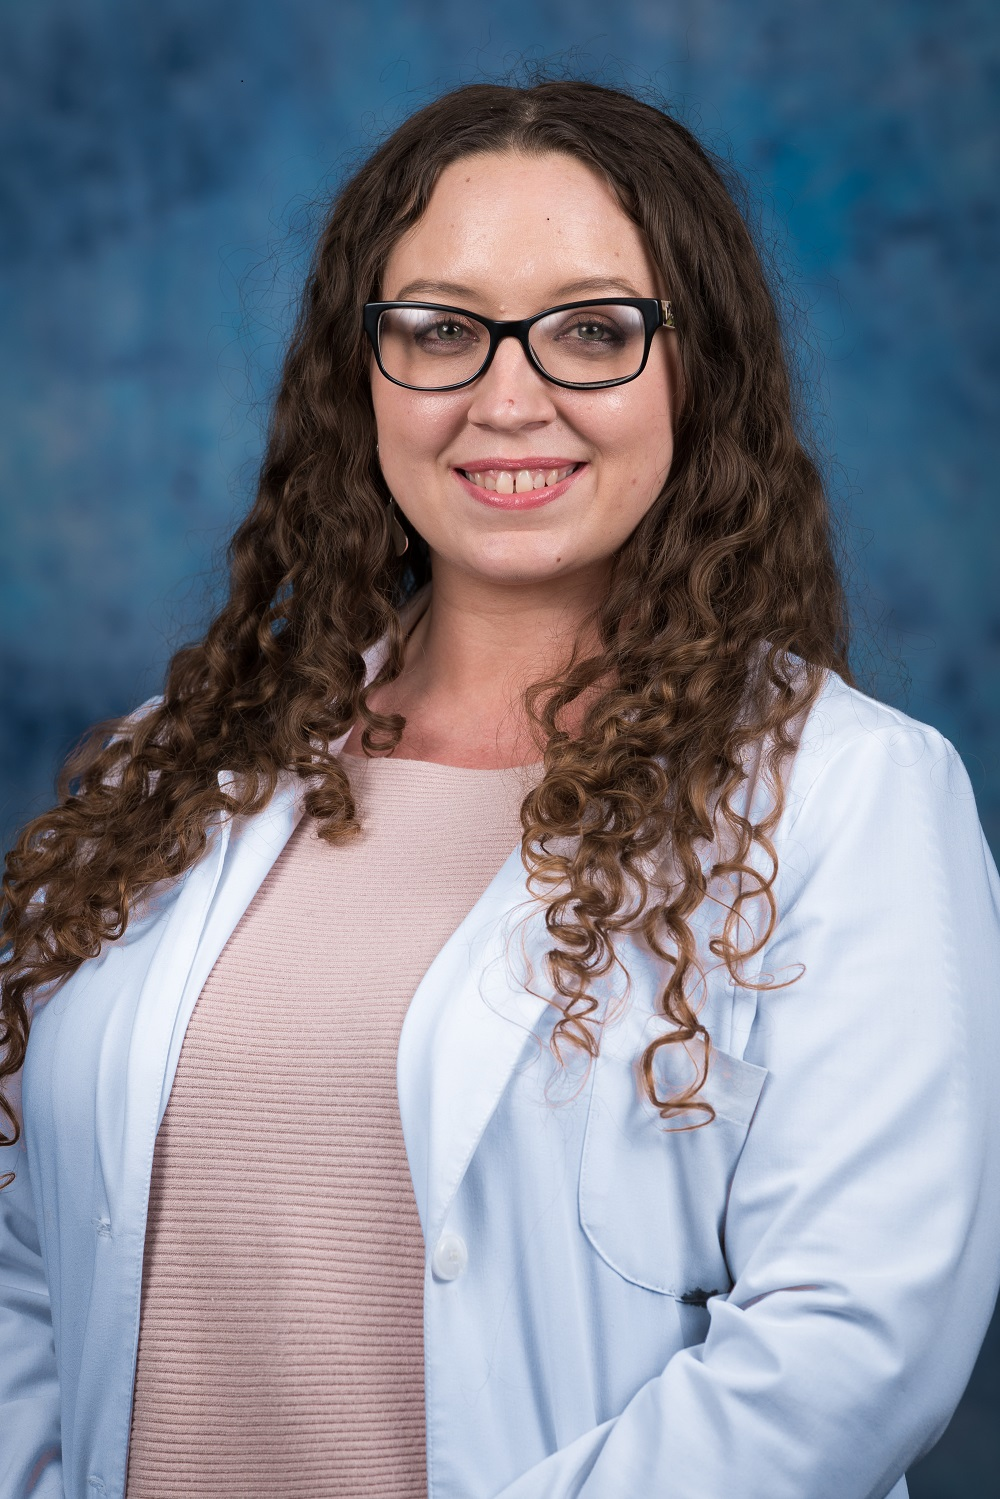 Jazmin Lowe, FNP-C joins Thompson Oncology Group.